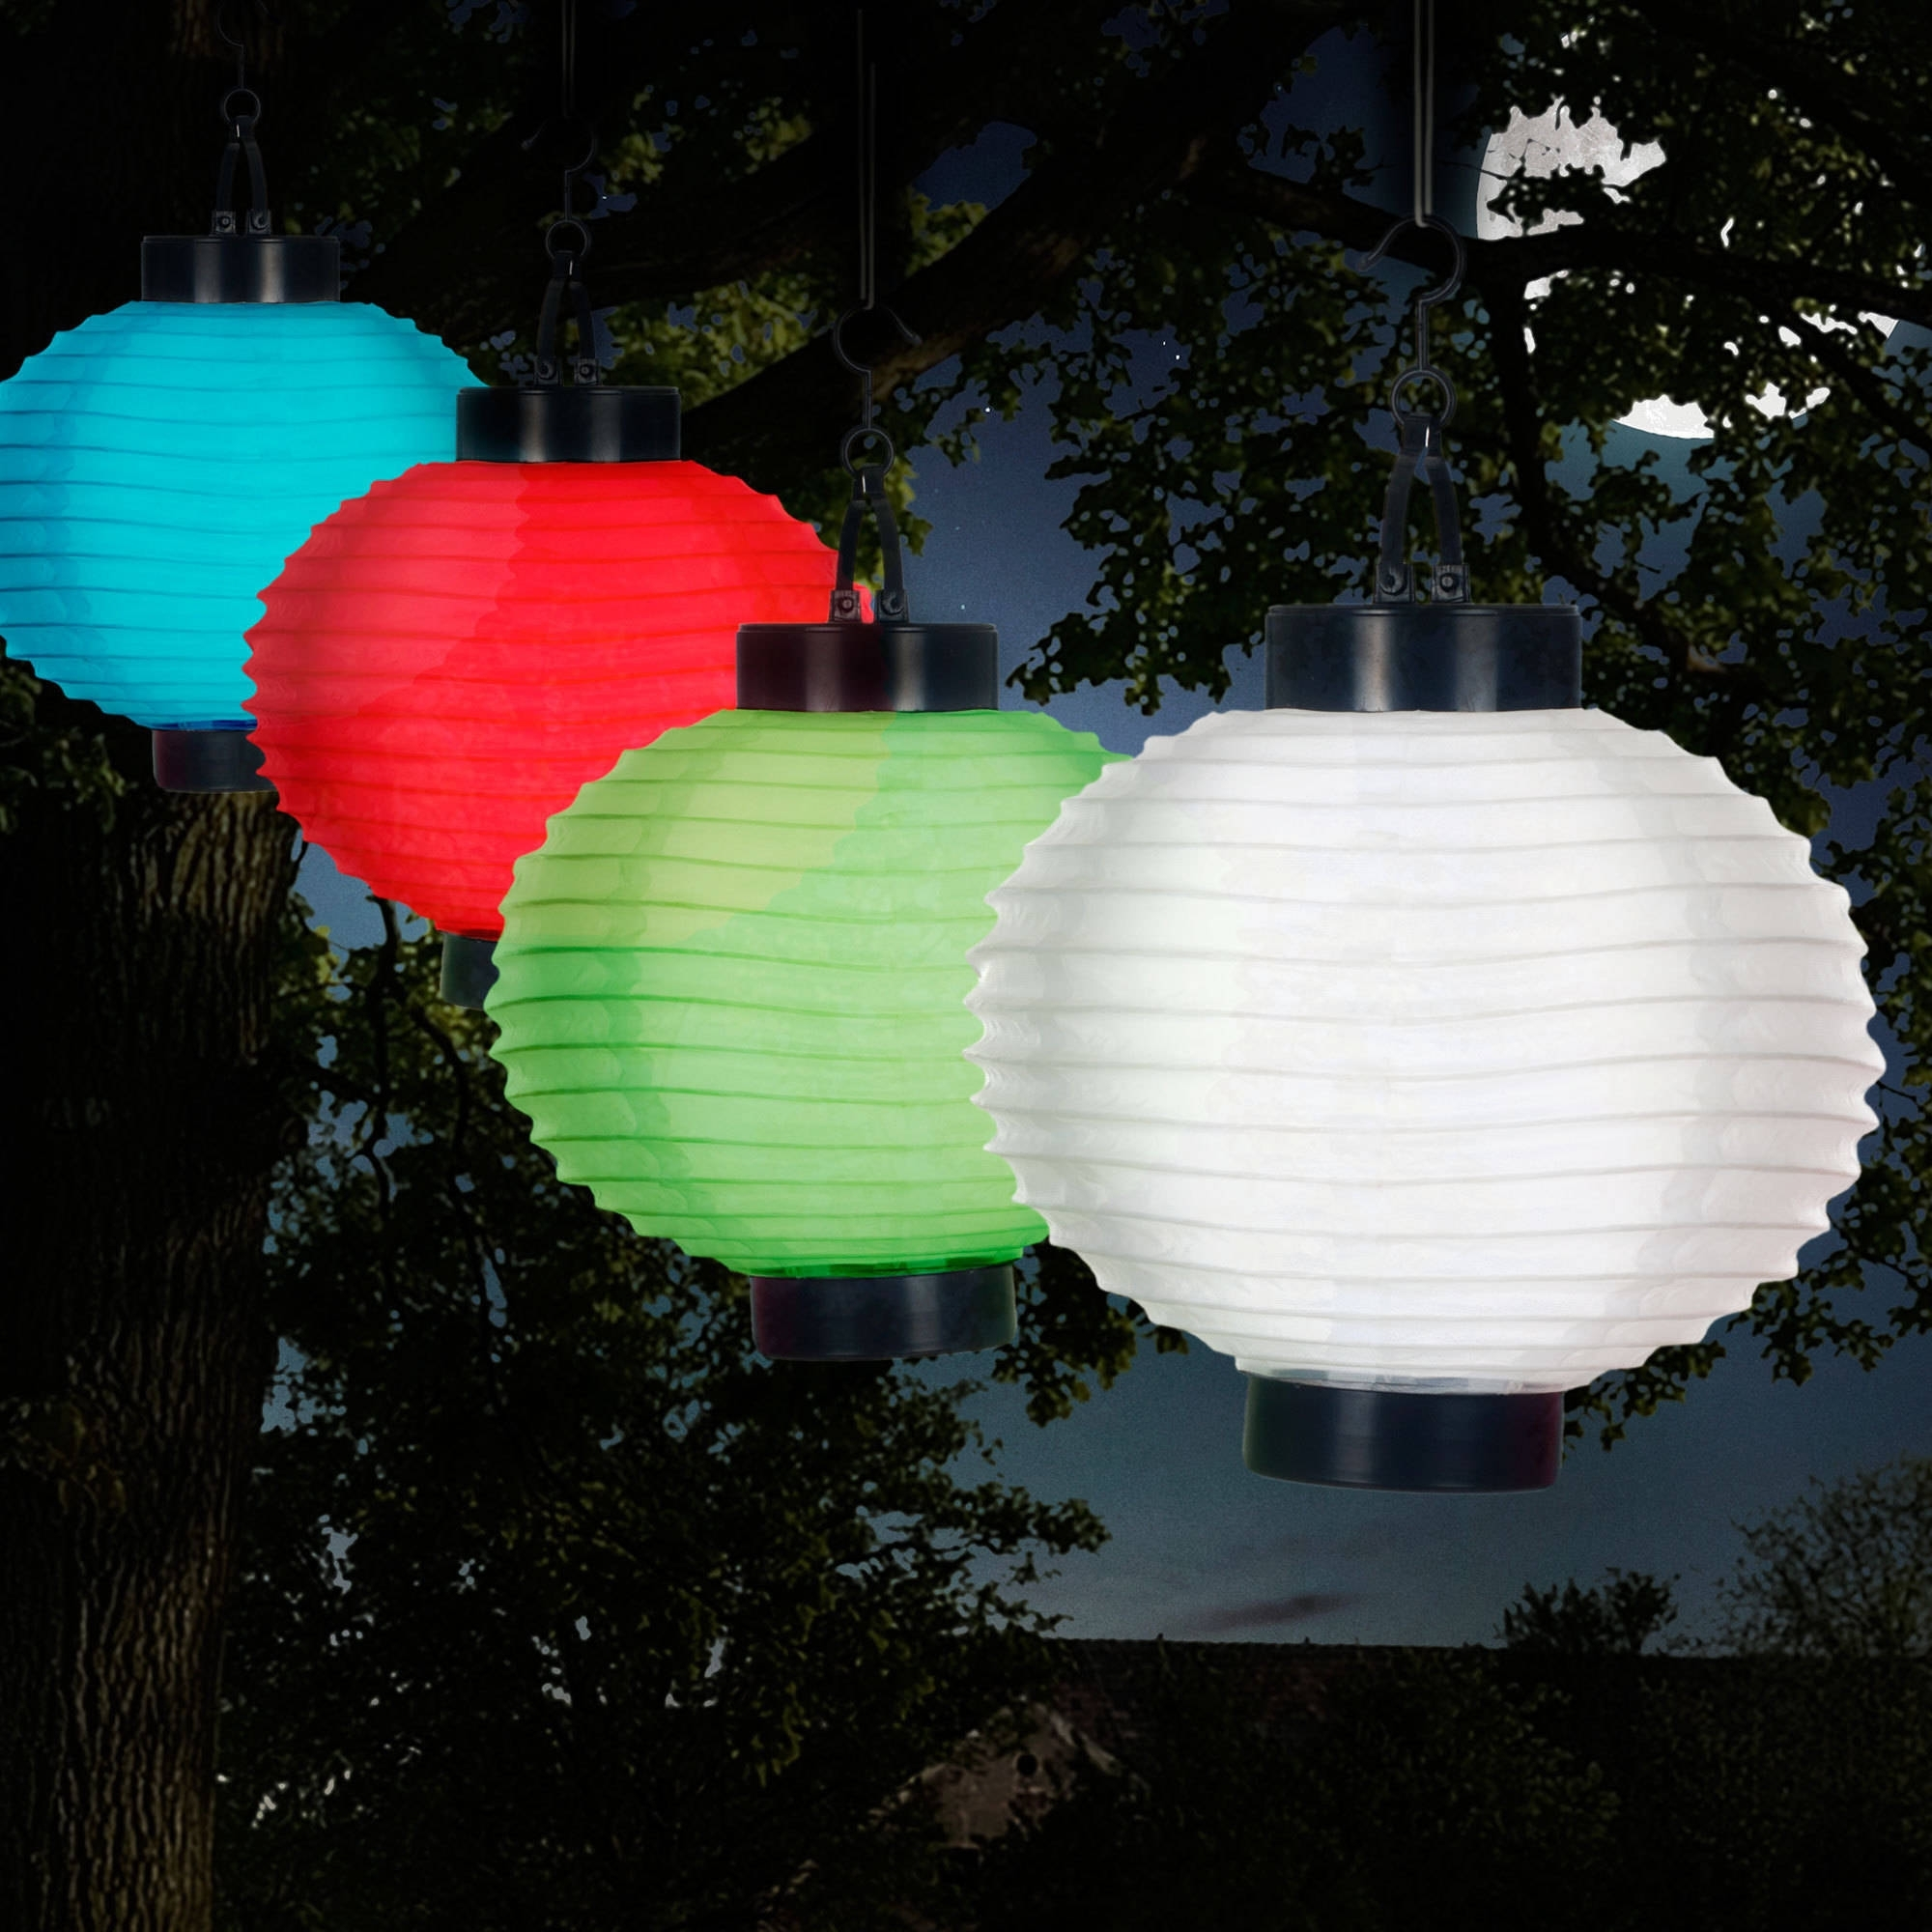 Outdoor Japanese Lanterns For Sale Intended For Well Liked Pure Garden Outdoor Solar Chinese Lanterns, Led, Set Of 4 – Walmart (View 4 of 20)